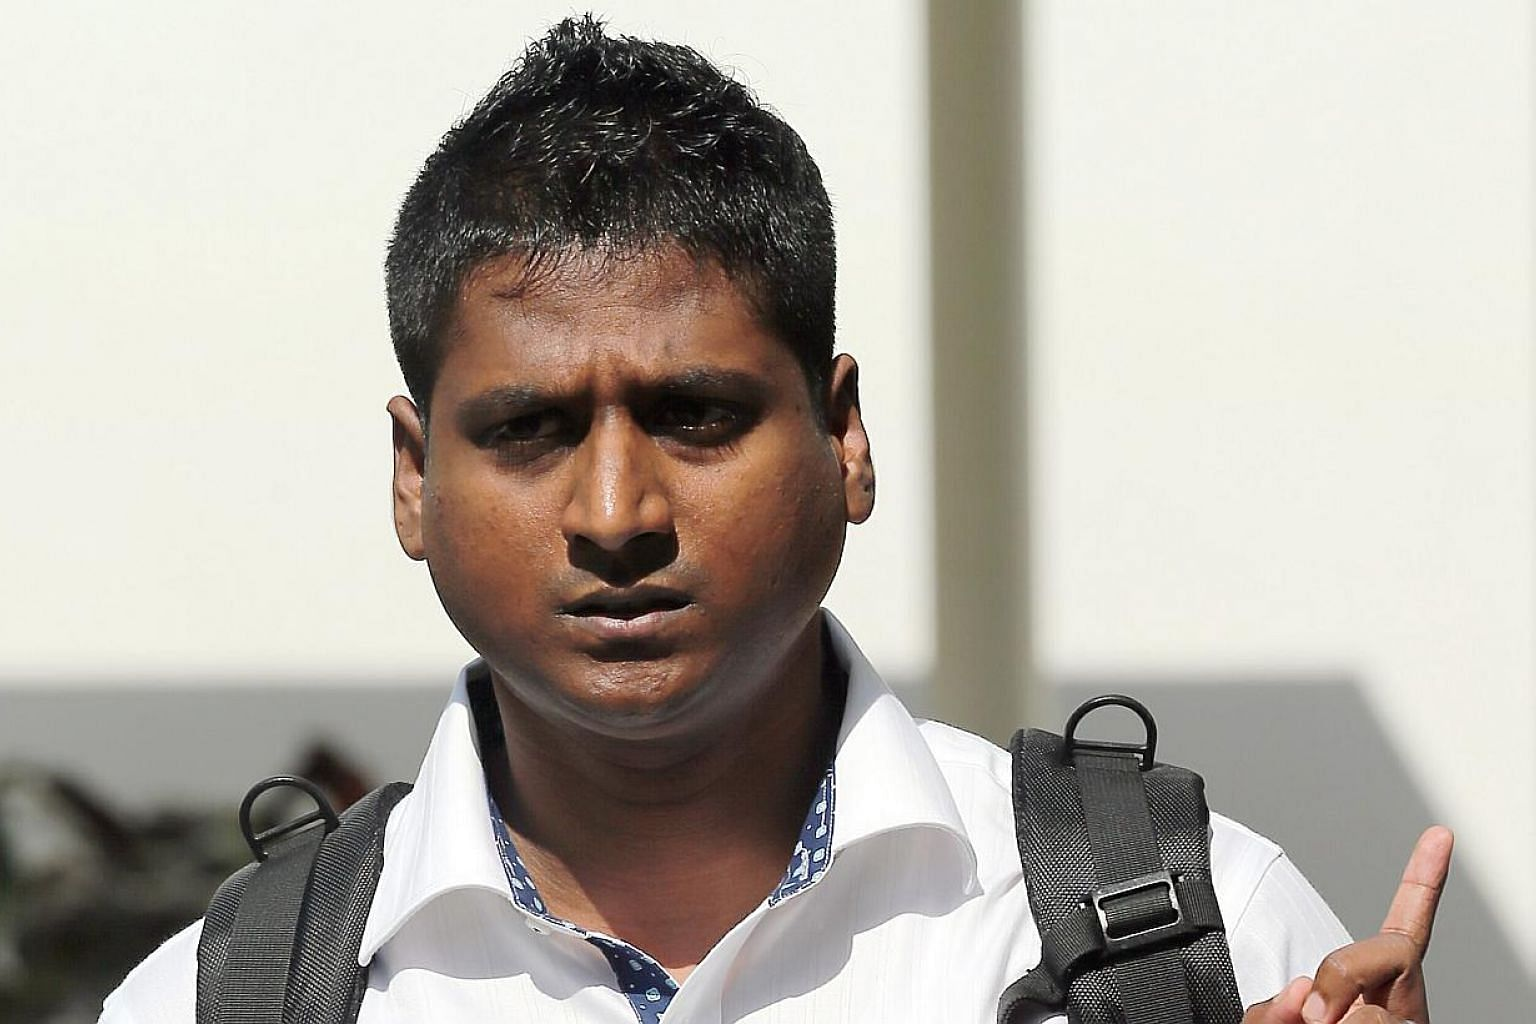 Arun Kaliamurthy, an Indian national who has a master's degree in information systems and was looking for a job here, had claimed trial to a single charge of failing to disperse from the scene despite police orders to do so. -- ST PHOTO: WONG KWAI CH